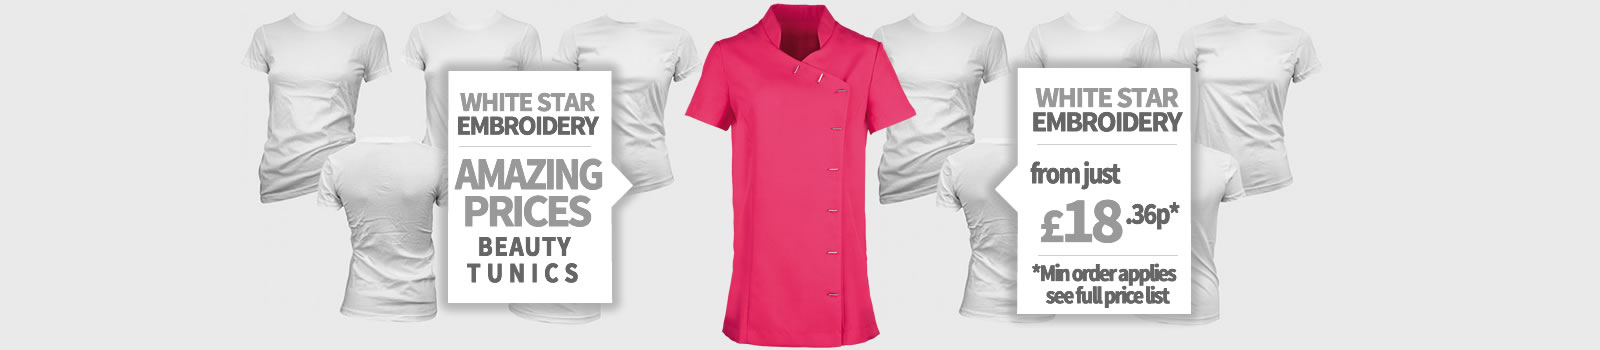 tunic special offer